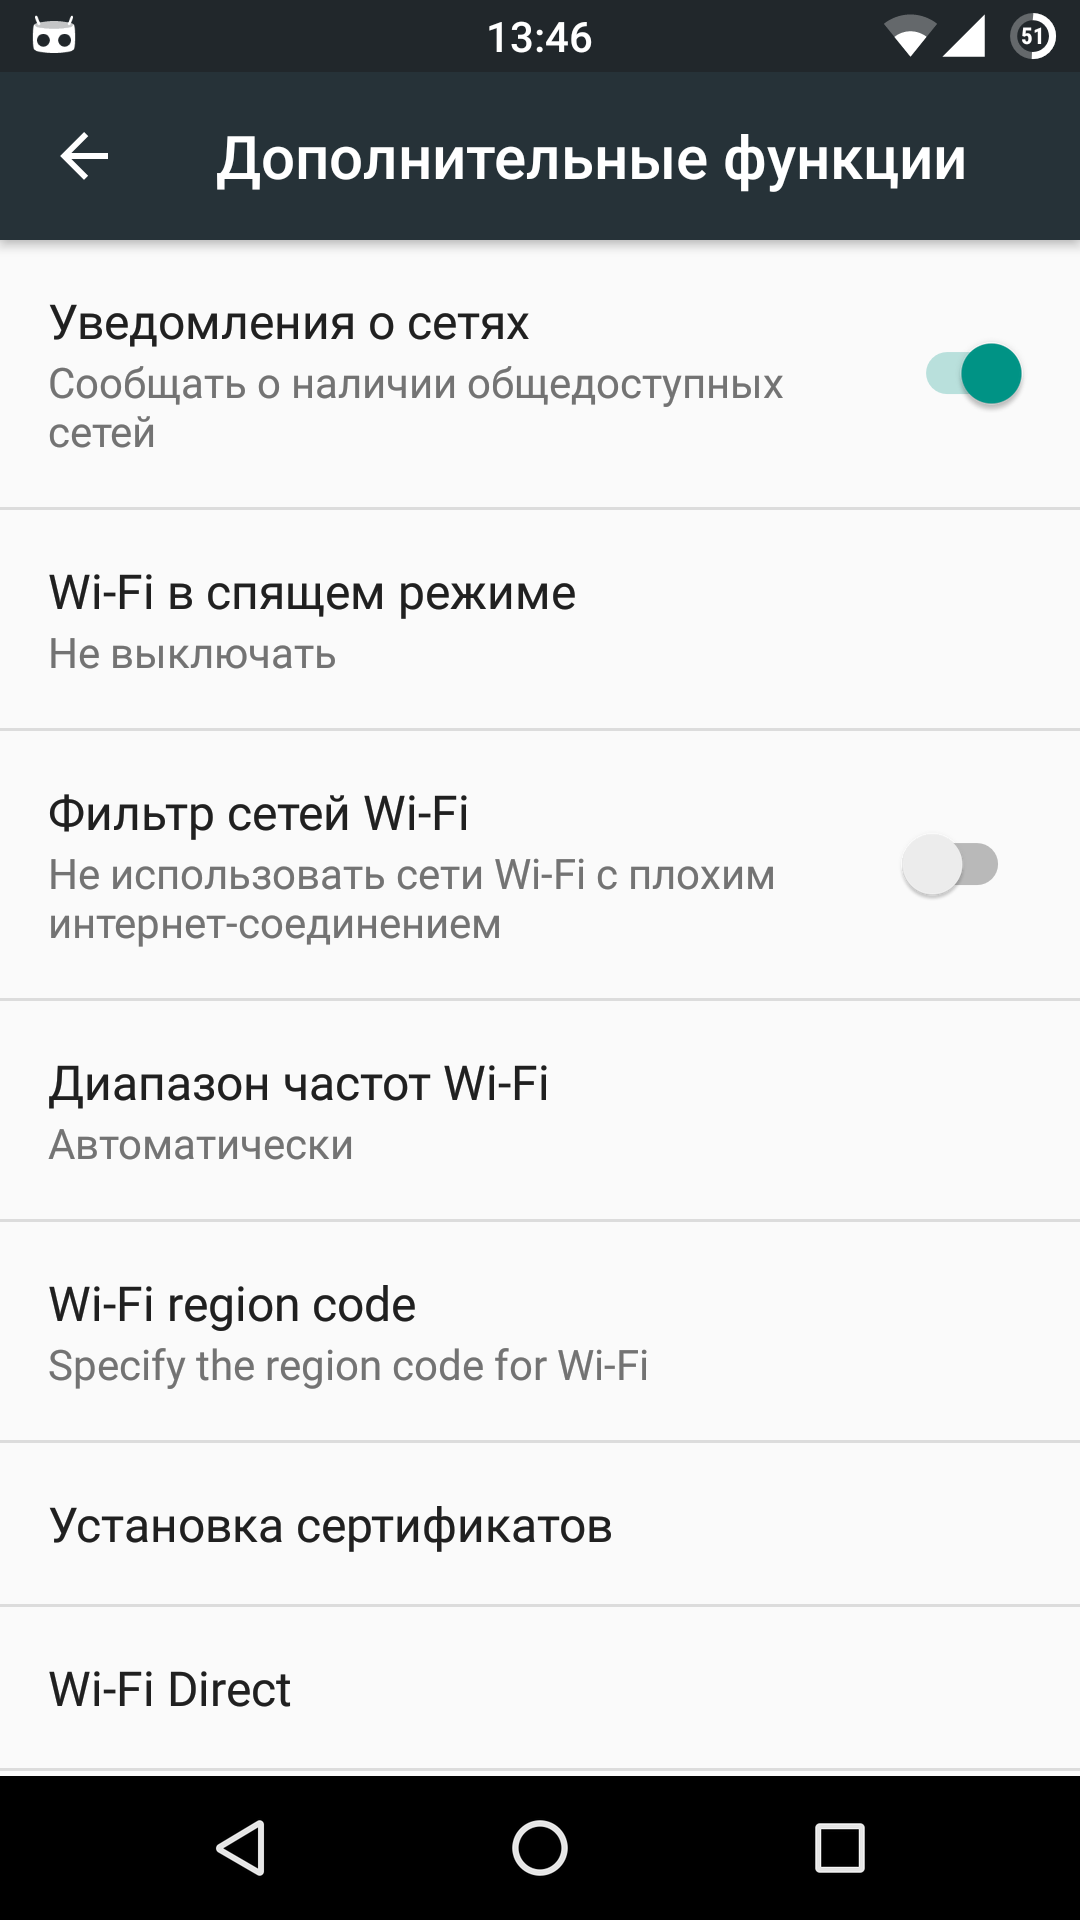 Wi-Fi advanced settings